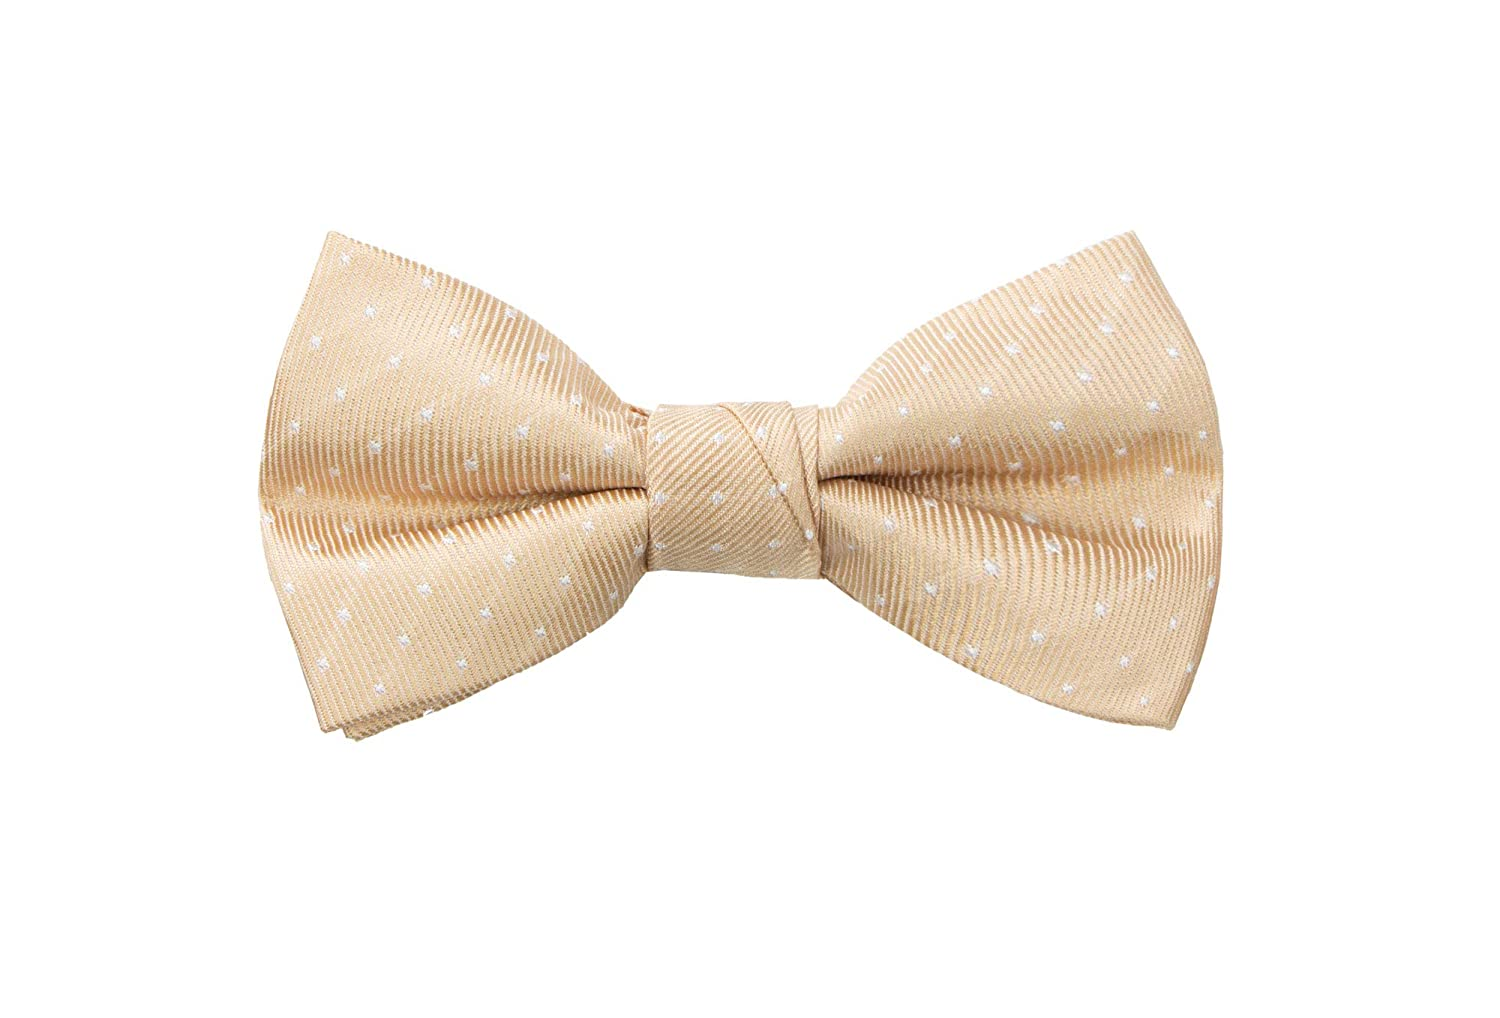 6fae5568c7a4 Amazon.com: Spring Notion Boy's Dotted Woven Bow Tie: Clothing